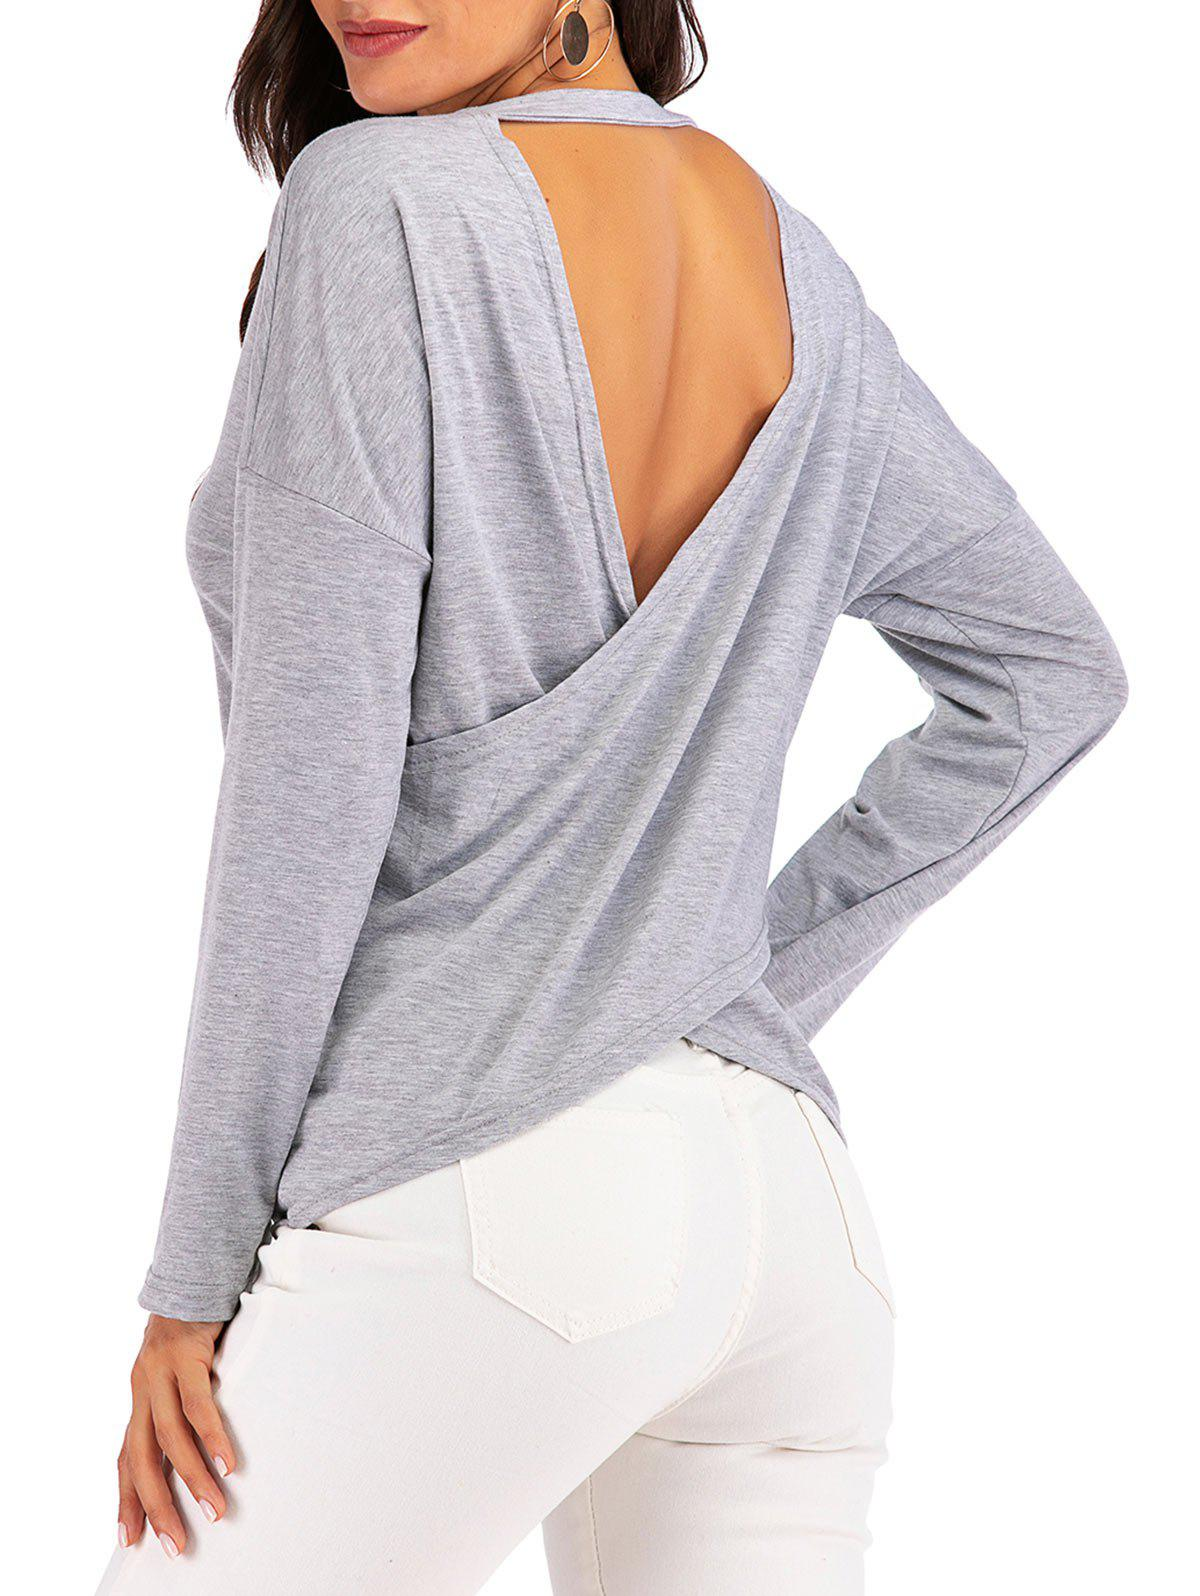 Retour Marled Cross Top Cutout - Gris L